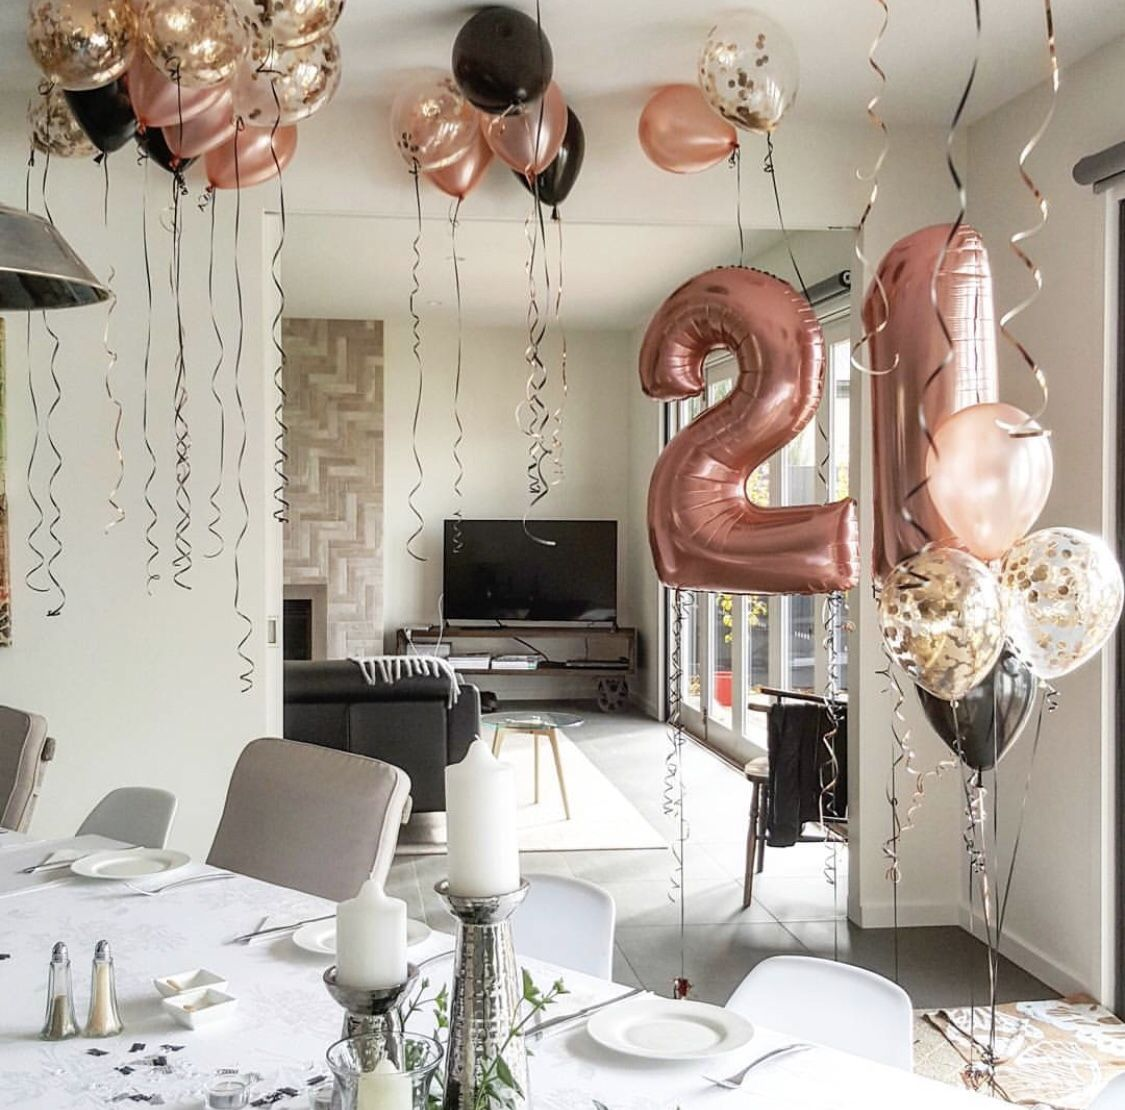 Rose Gold 21st Birthday Decor Set Jumbo 21 Big Number 21st Birthday Party Ideas 21st Birthday Gifts For Her 21st Birthday Balloon Kit In 2021 21st Birthday Balloons